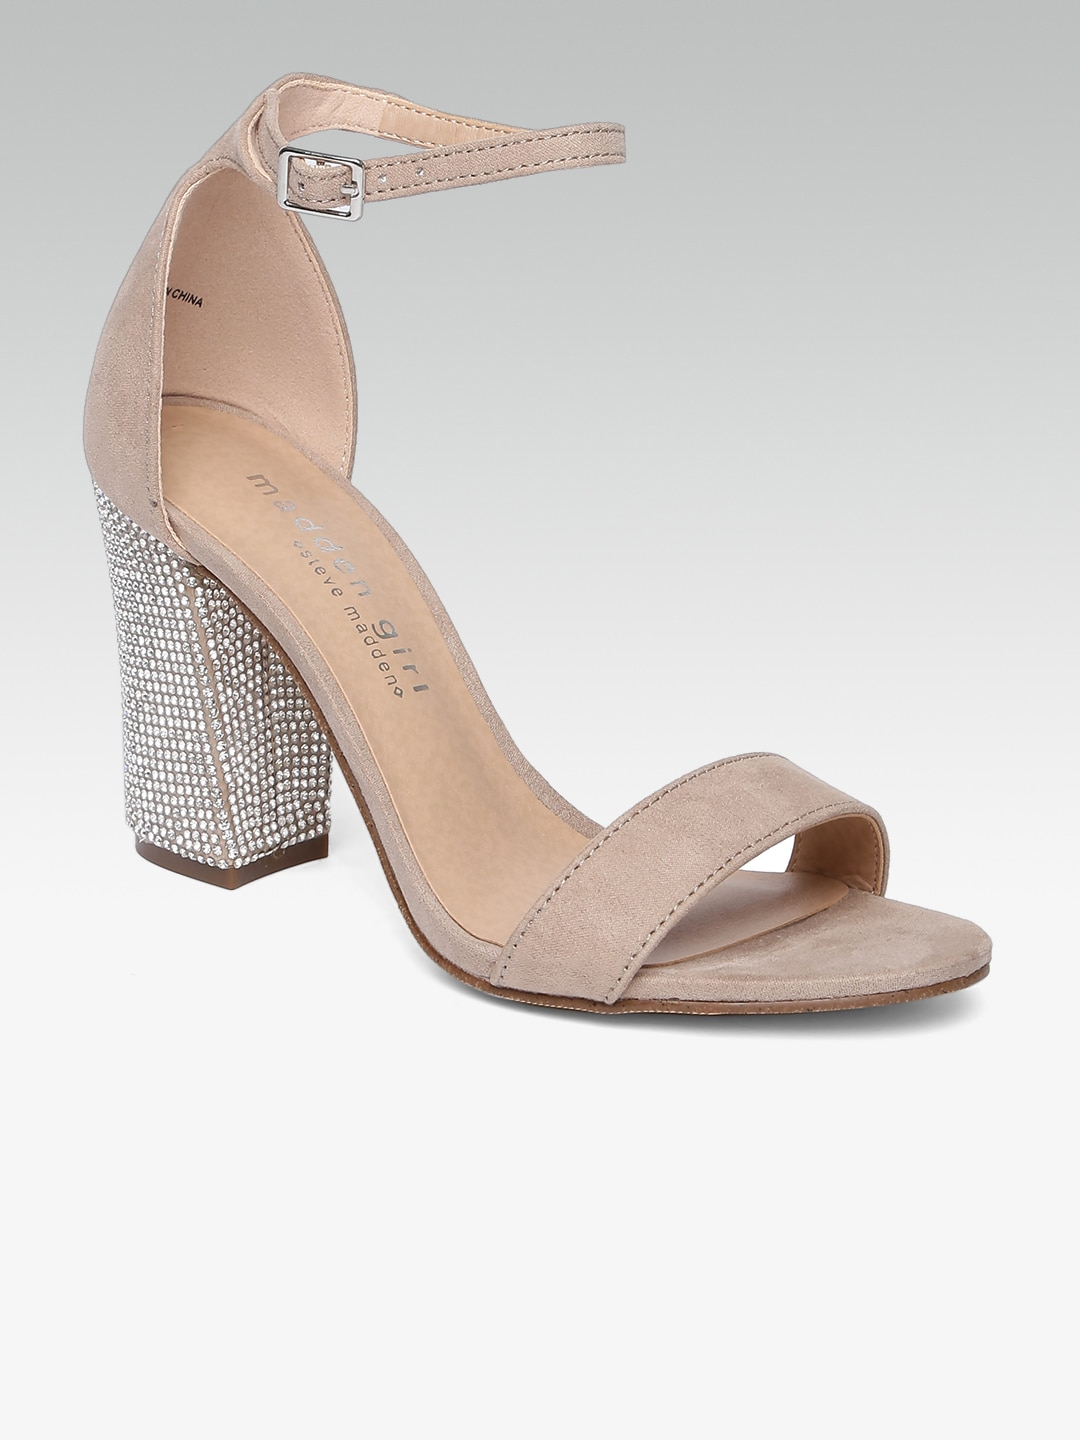 911e47f3322 Steve Madden - Buy Steve Madden Products Online In India